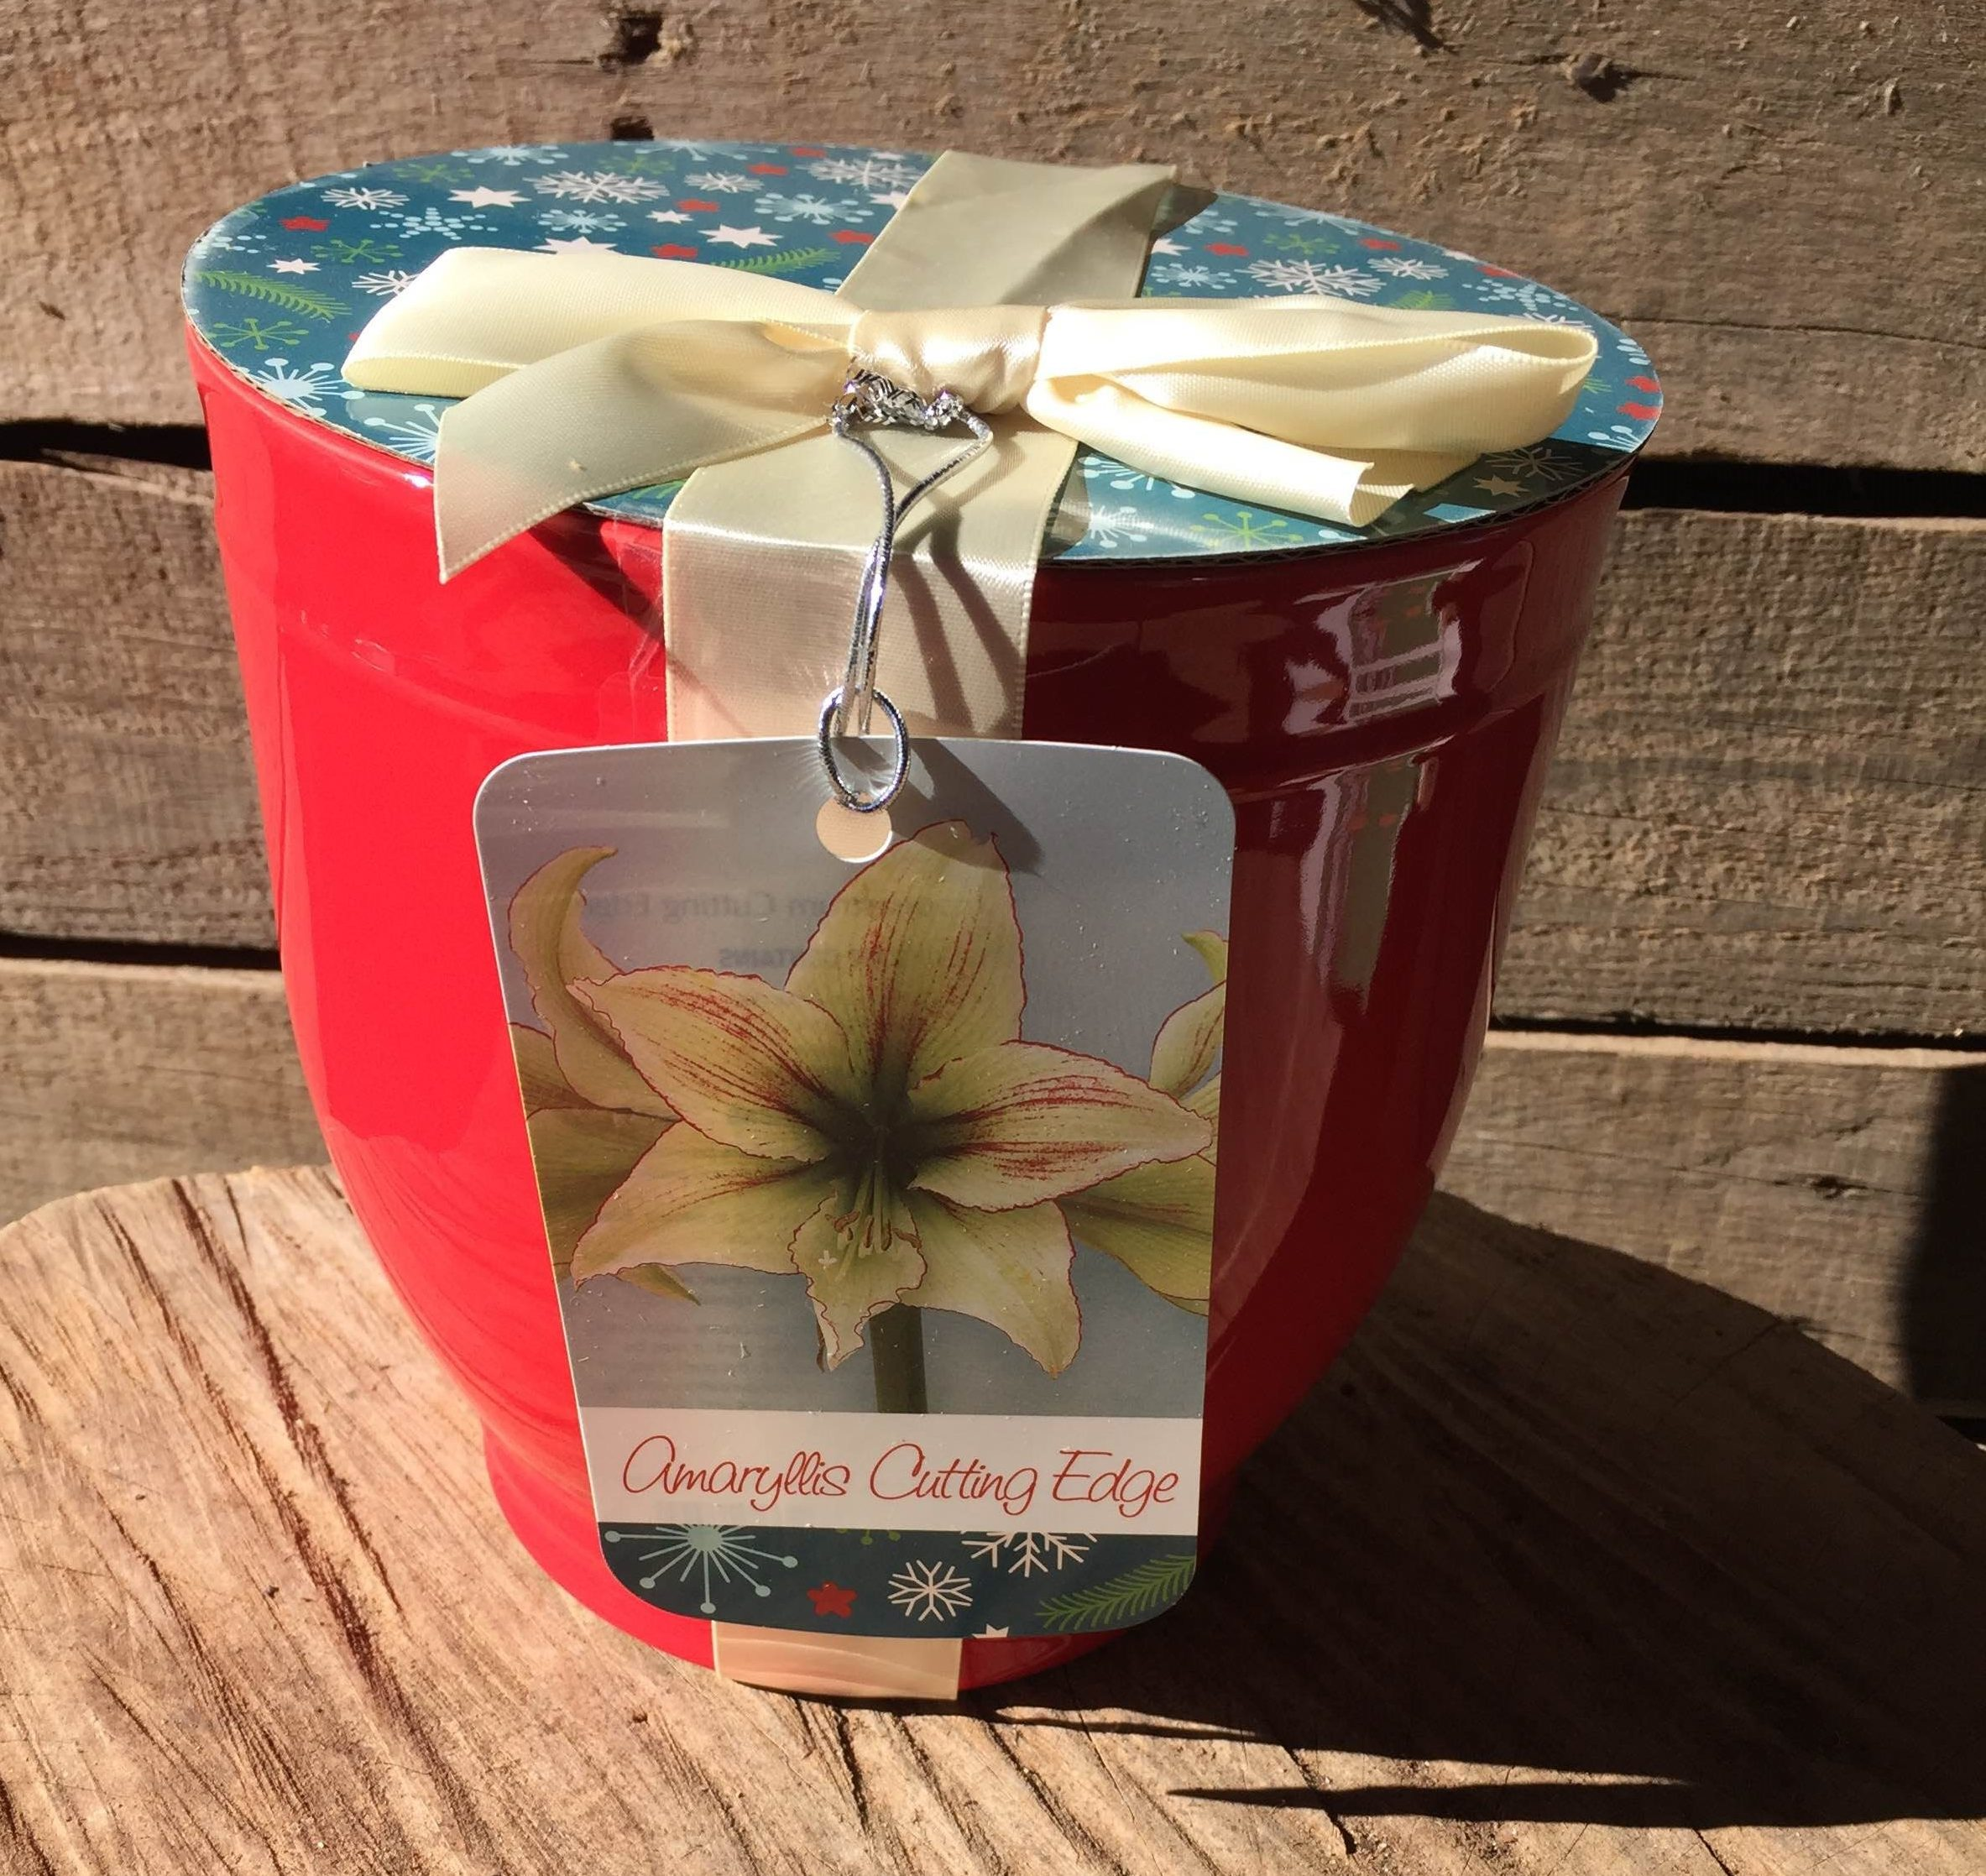 An amaryllis grow kit from our online plant nursery, an online nursery for amaryllis grow kits, tulip bulb mix, citronella plants, paperwhite bulb mix, pink muhly grass, horseradish root and more!